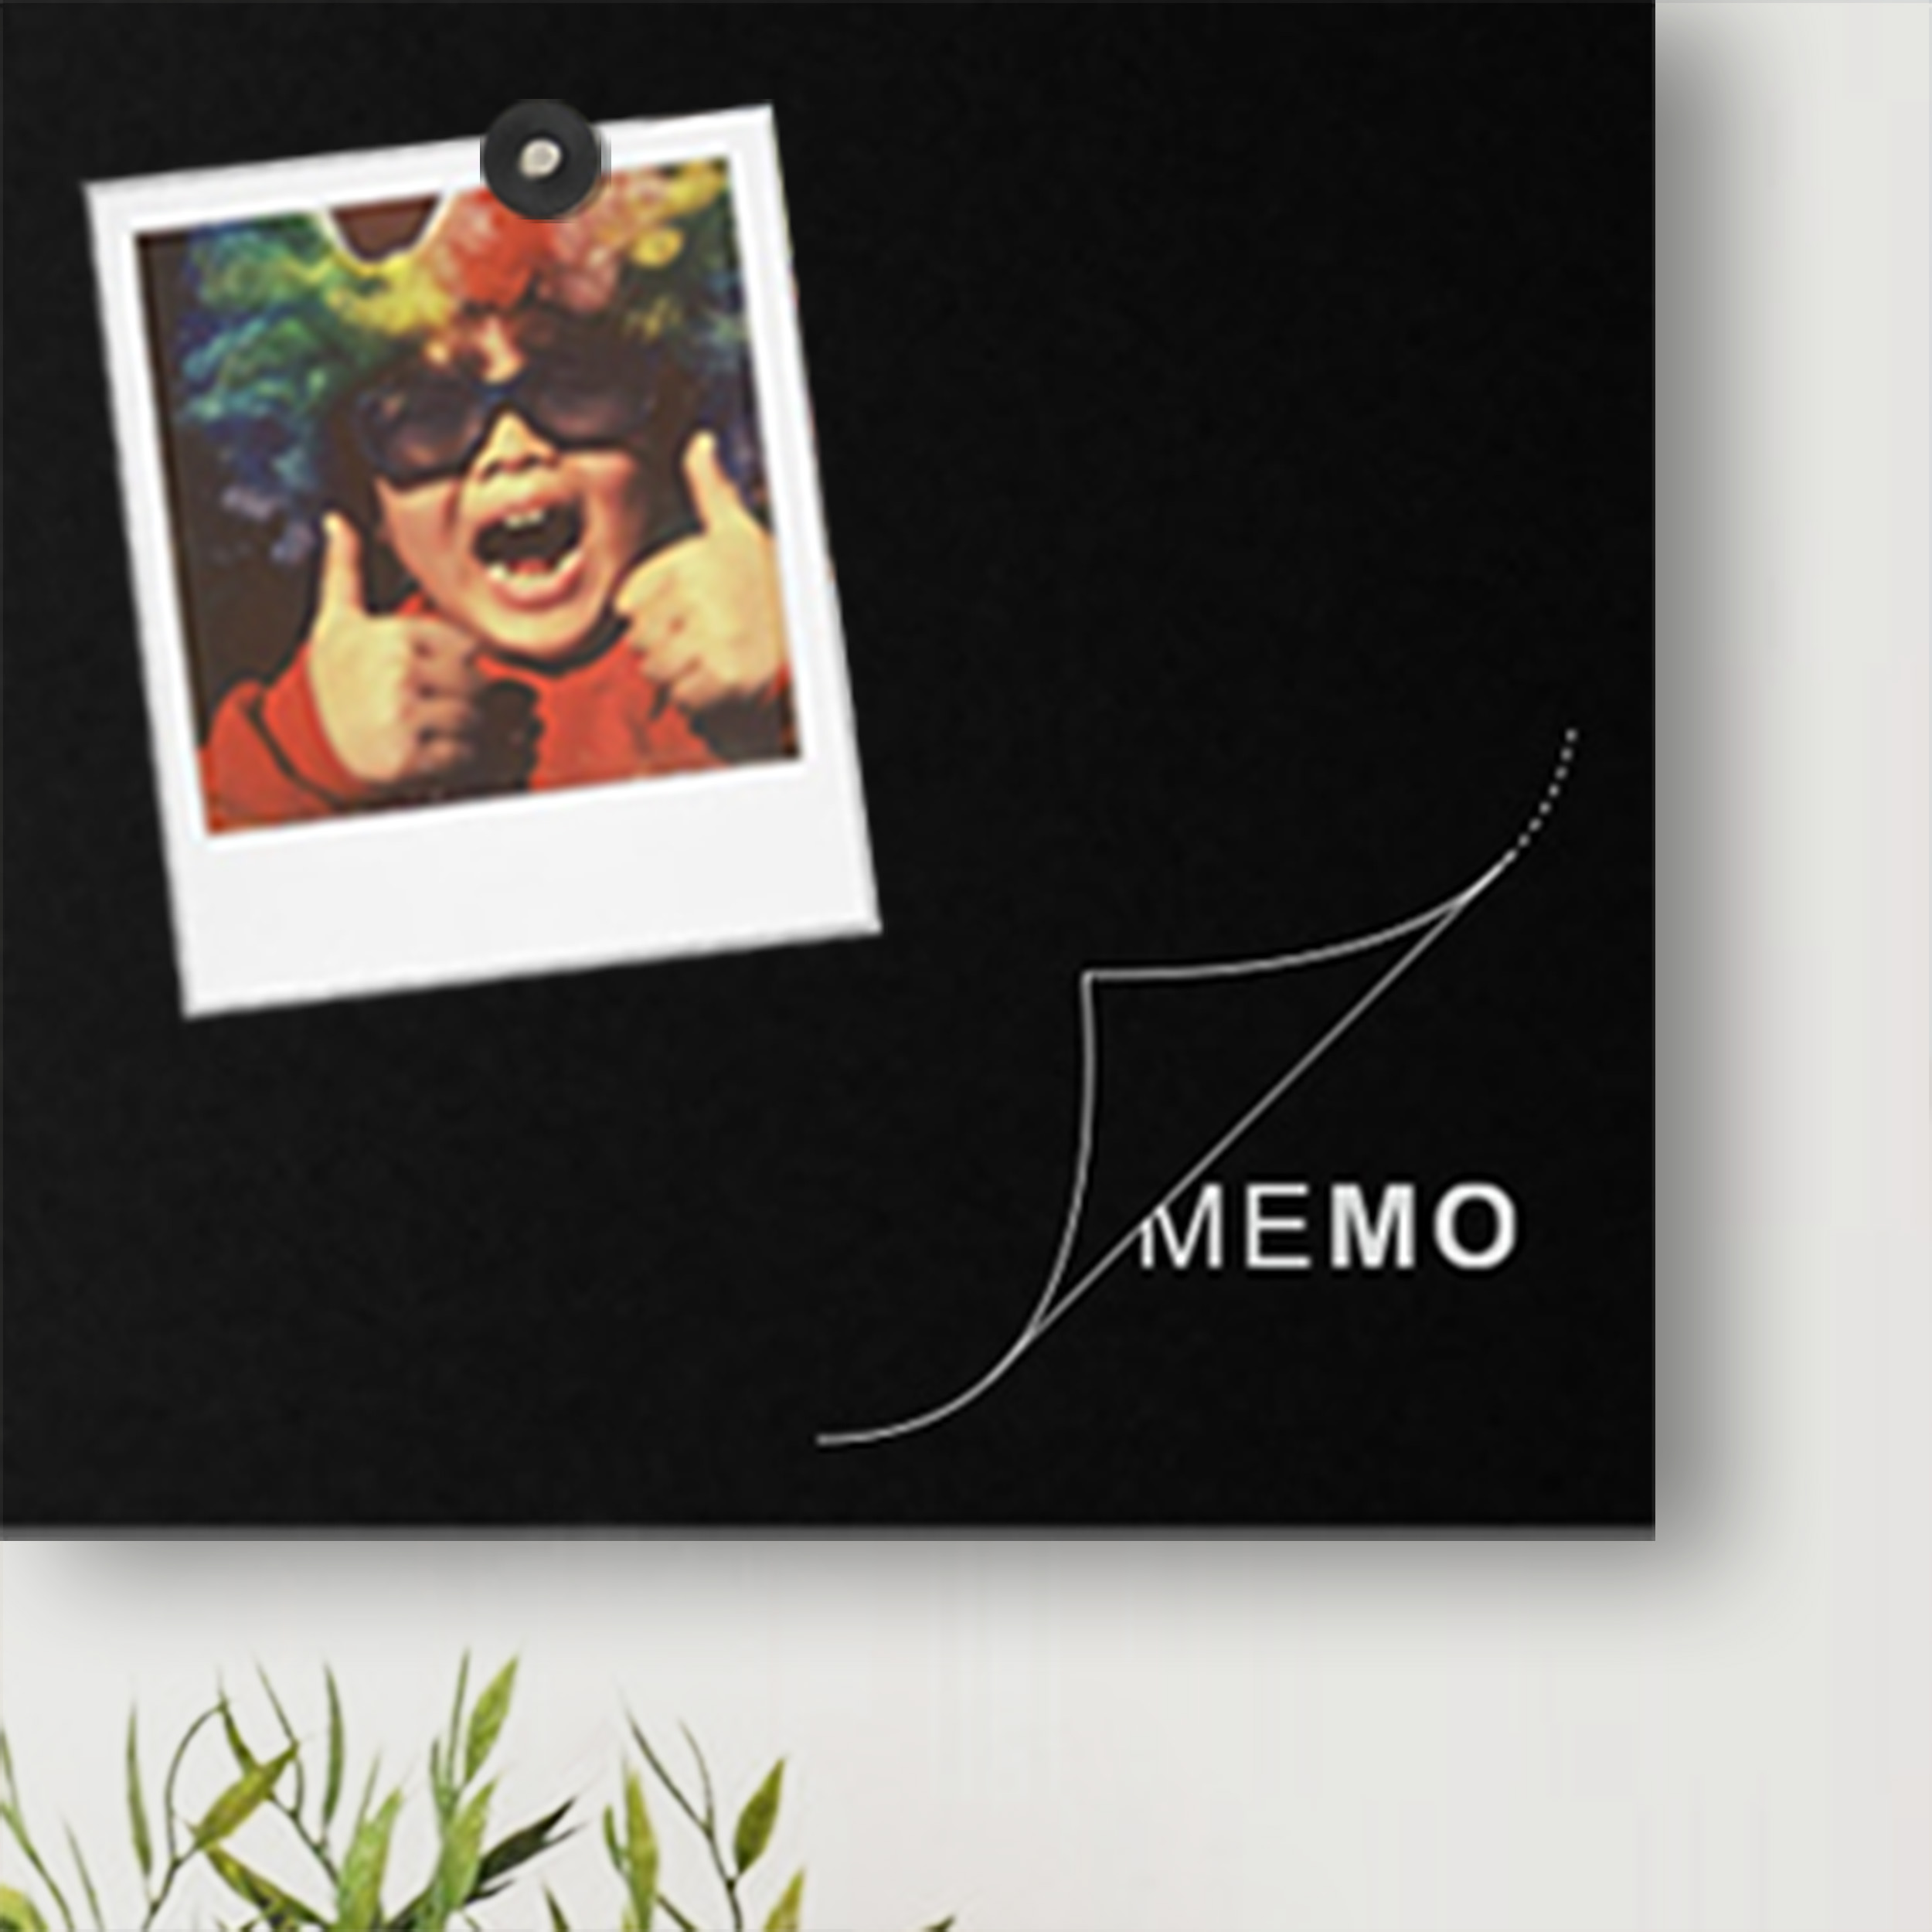 Memo board design black